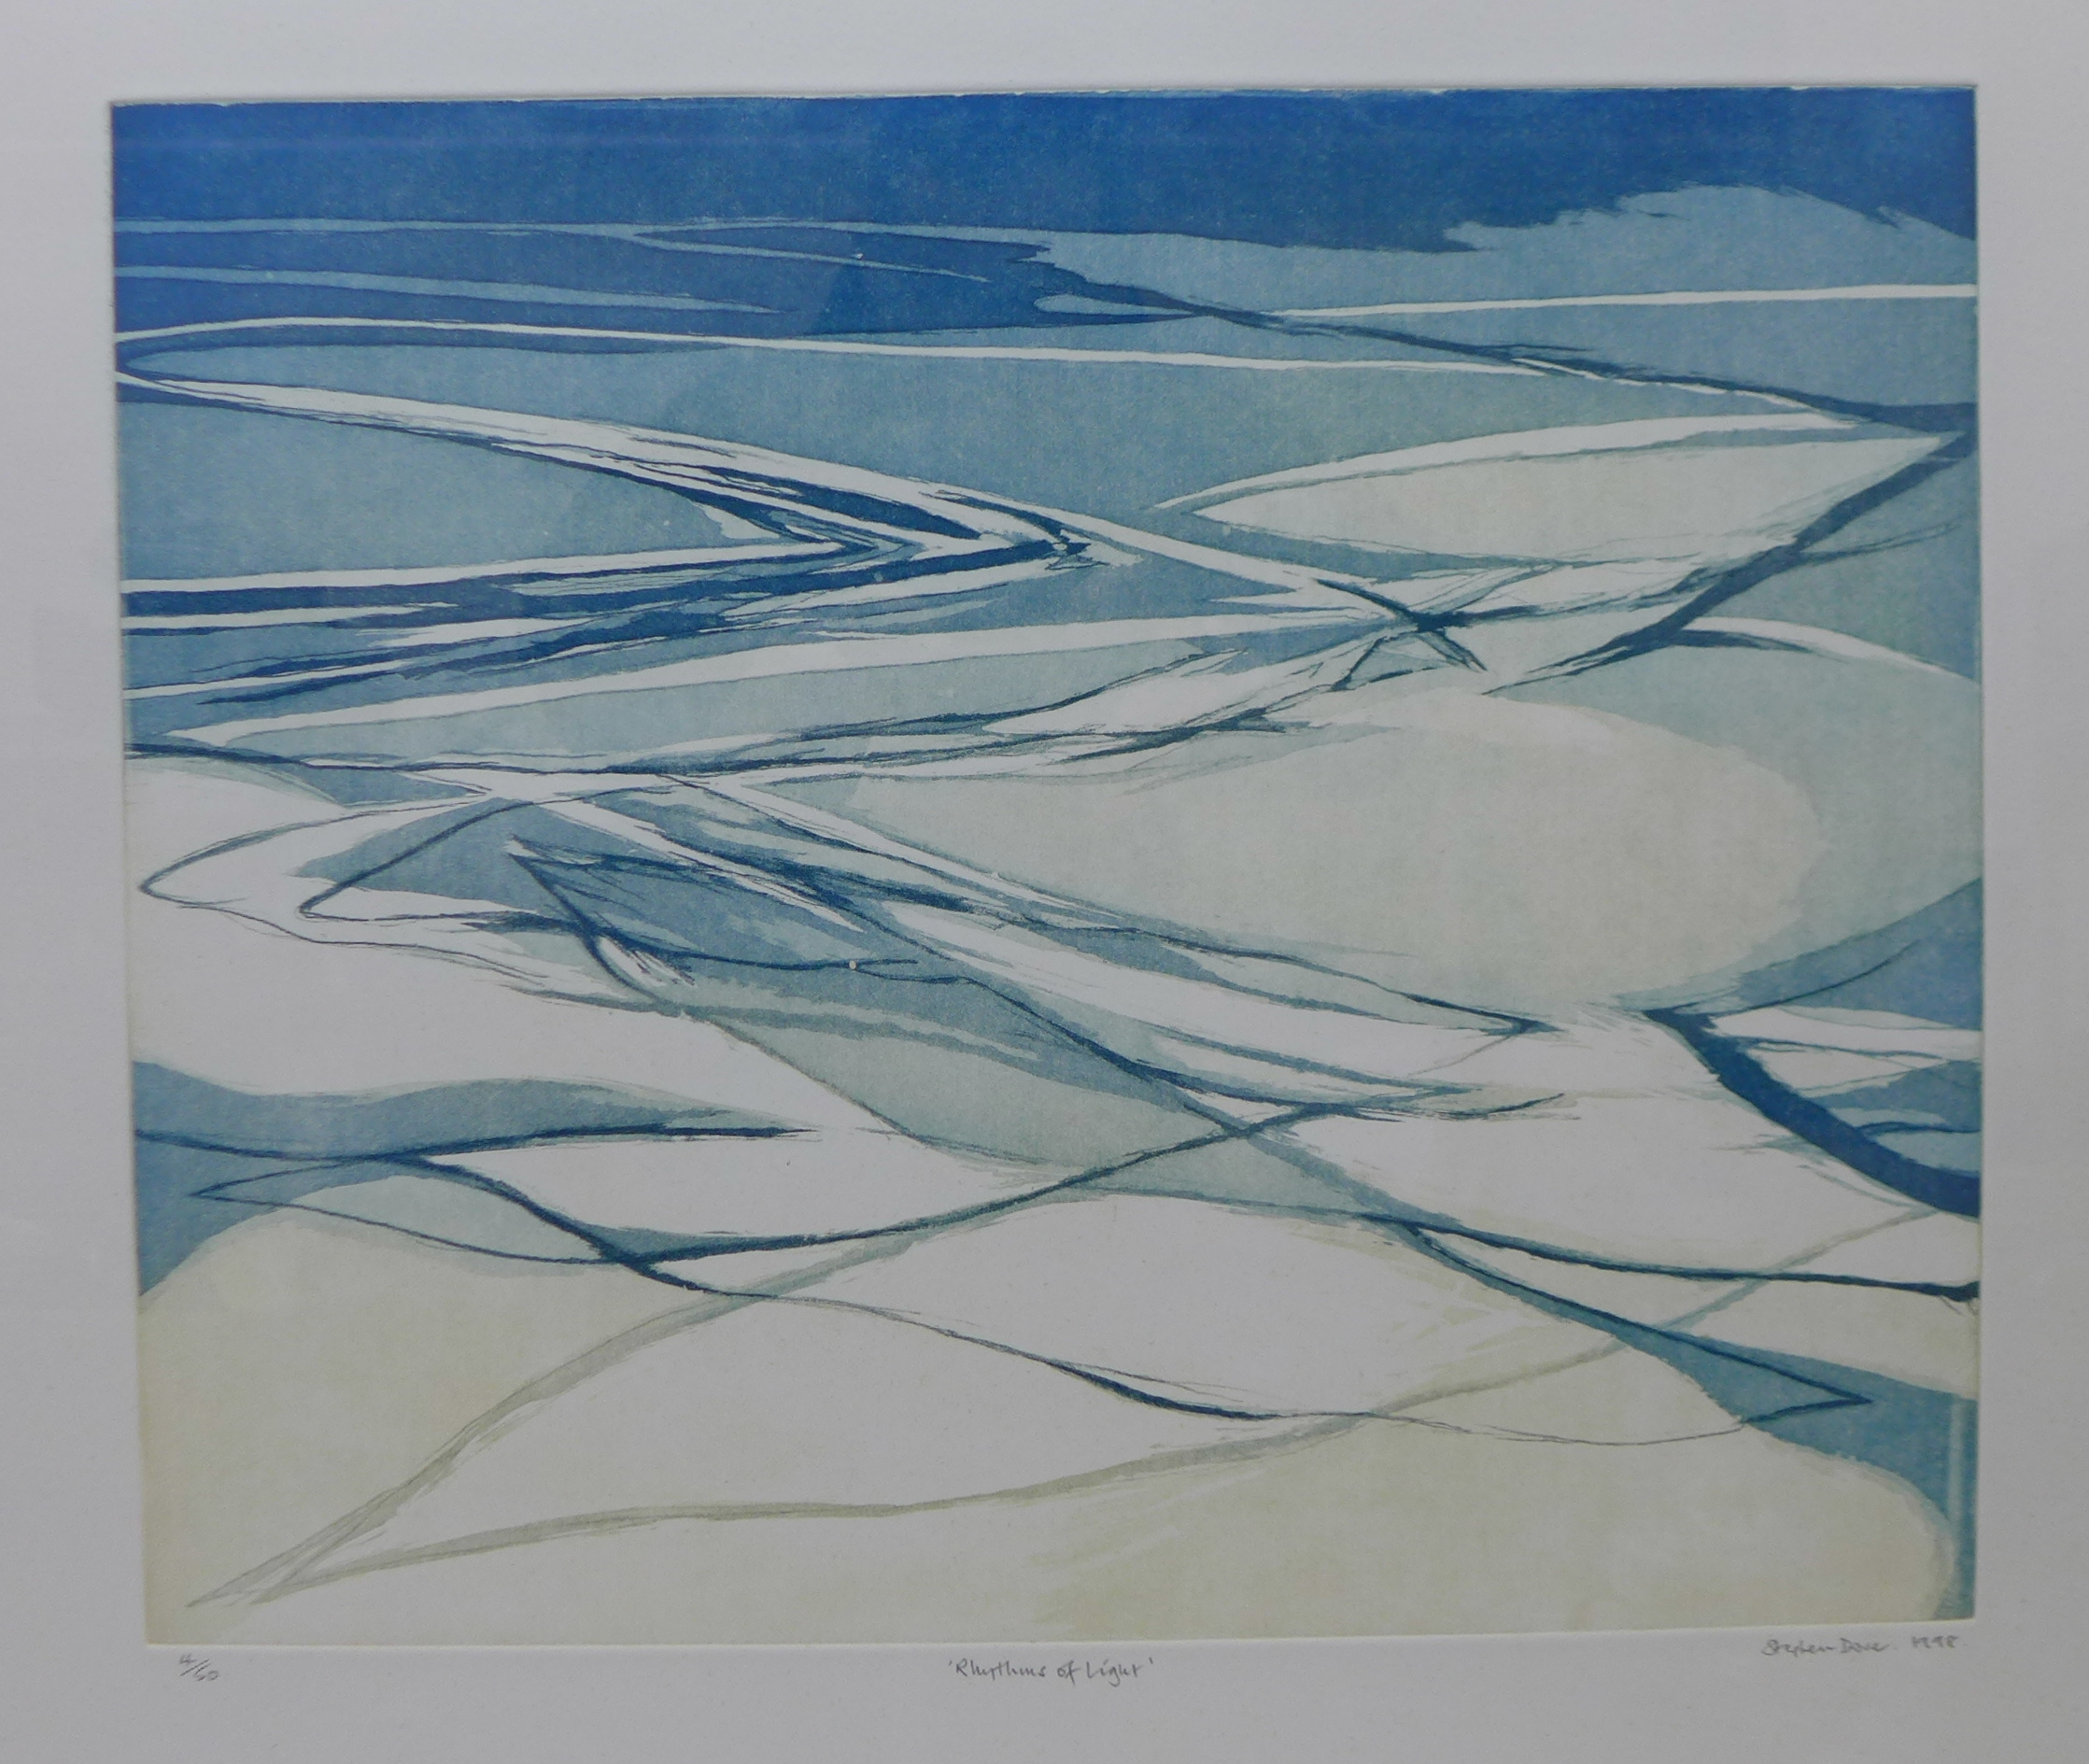 Lot 22 - A signed Stephen Dove limited edition etching, Rhythms of Light, numbered 4/50, 48 x 55cms,